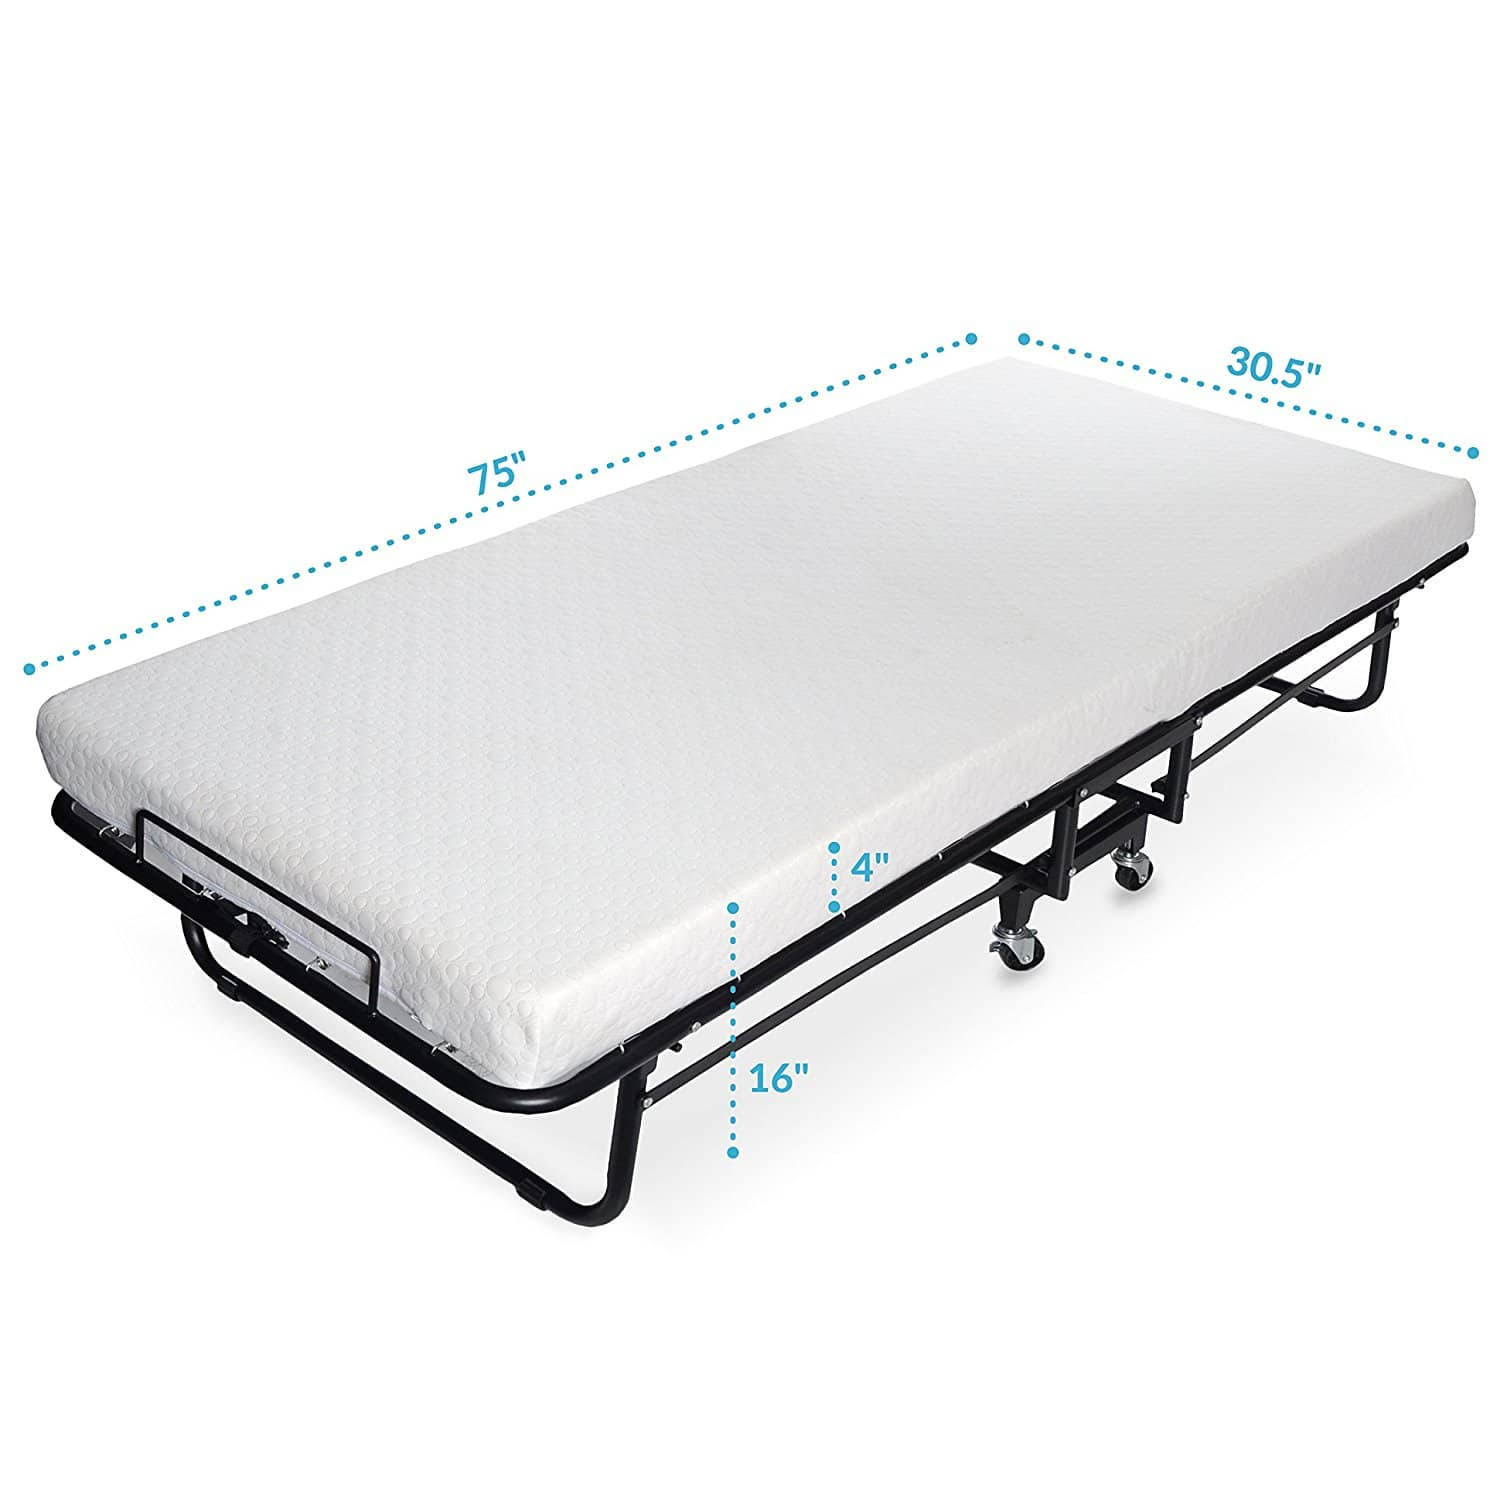 Milliard Premium Folding Bed with Luxurious Memory Foam Mattress